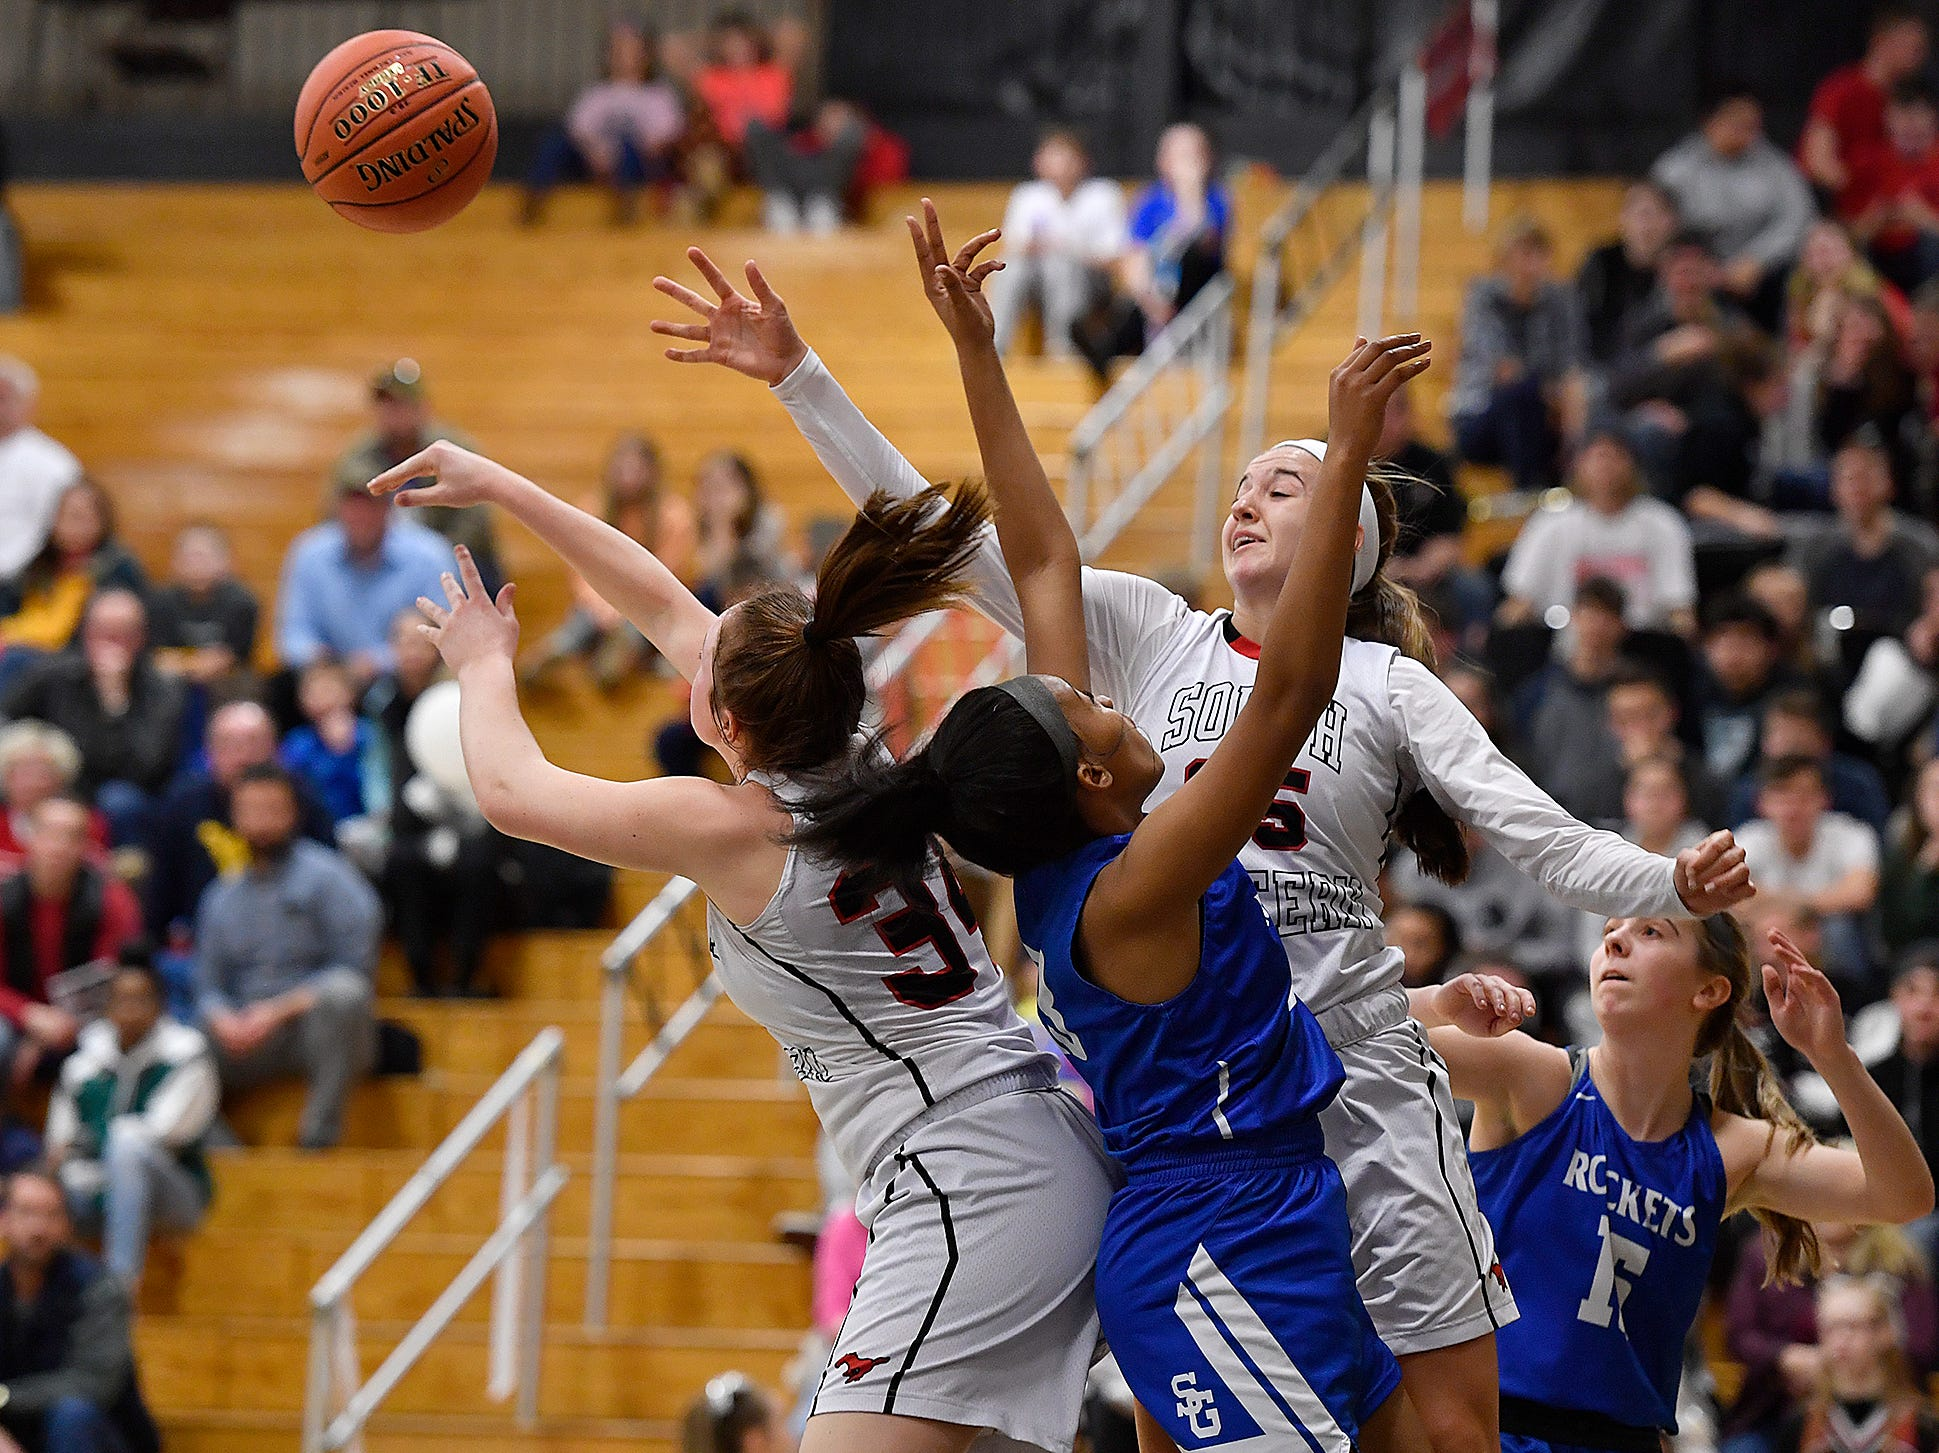 Spring Grove's Hylin Sorrell, center, battles for a rebound with Maddy McMaster (34) and Taylor Geiman (35) of South Western, Monday, Feb. 4, 2019.John A. Pavoncello photo